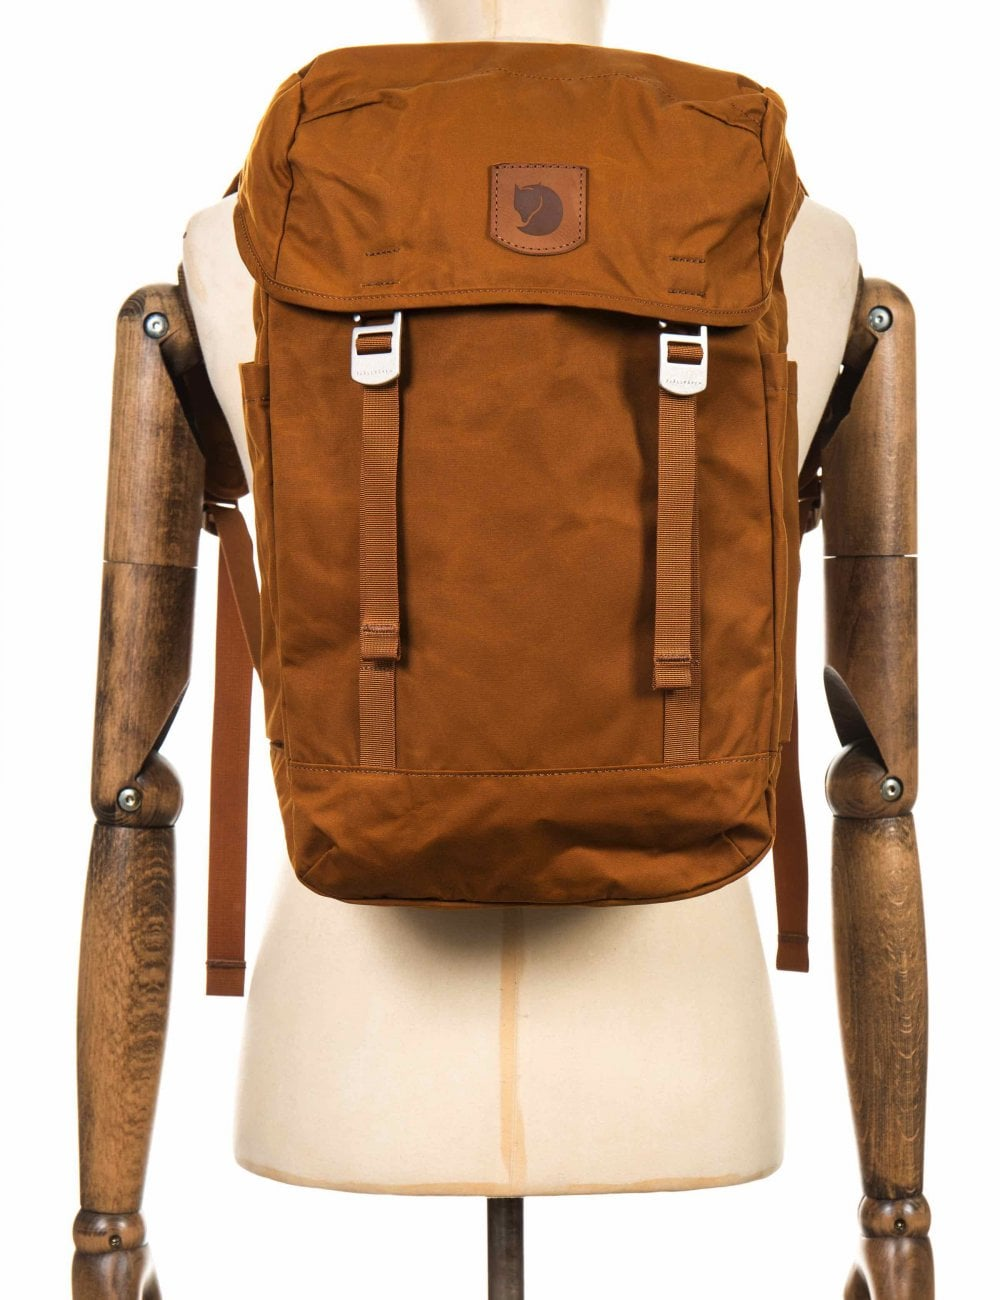 6324b48a Fjallraven Greenland Top 20L Backpack - Chestnut - Accessories from ...